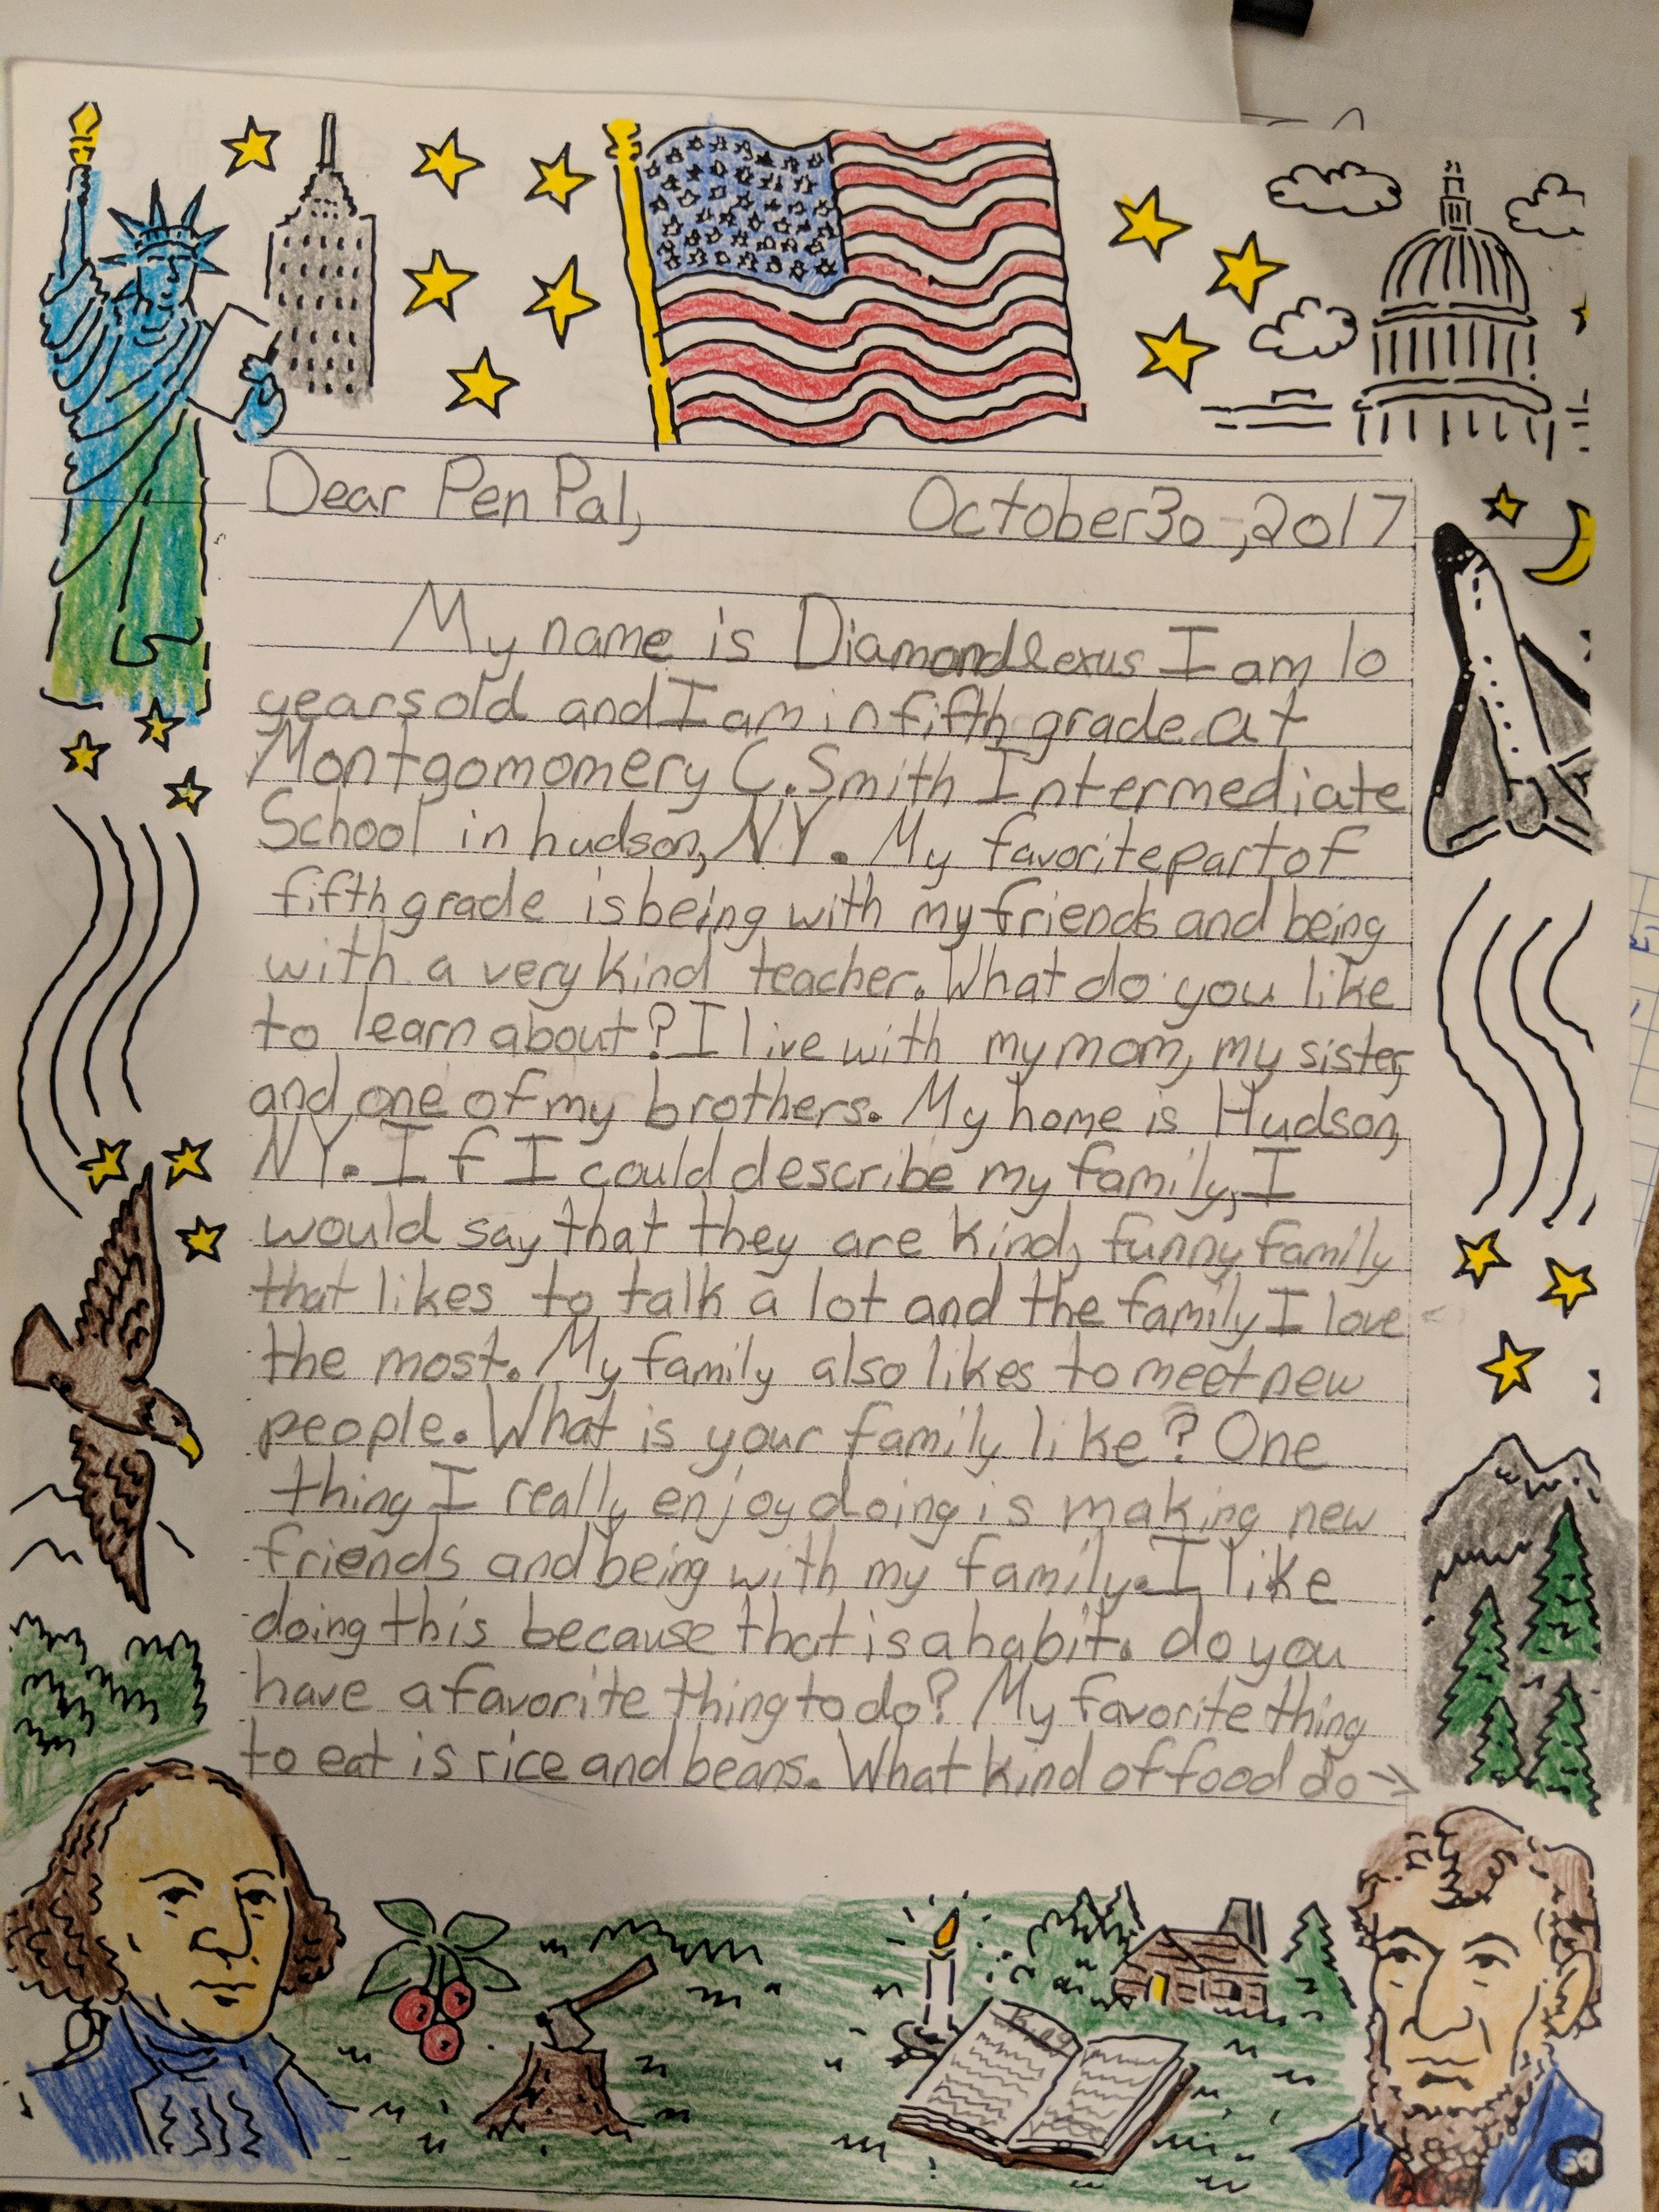 Hudson Pen Pal Letters on Display at Syrian Refugee Concert - Read the articleAmanda Purcell Columbia-Greene MediaThursday, February 15, 2018